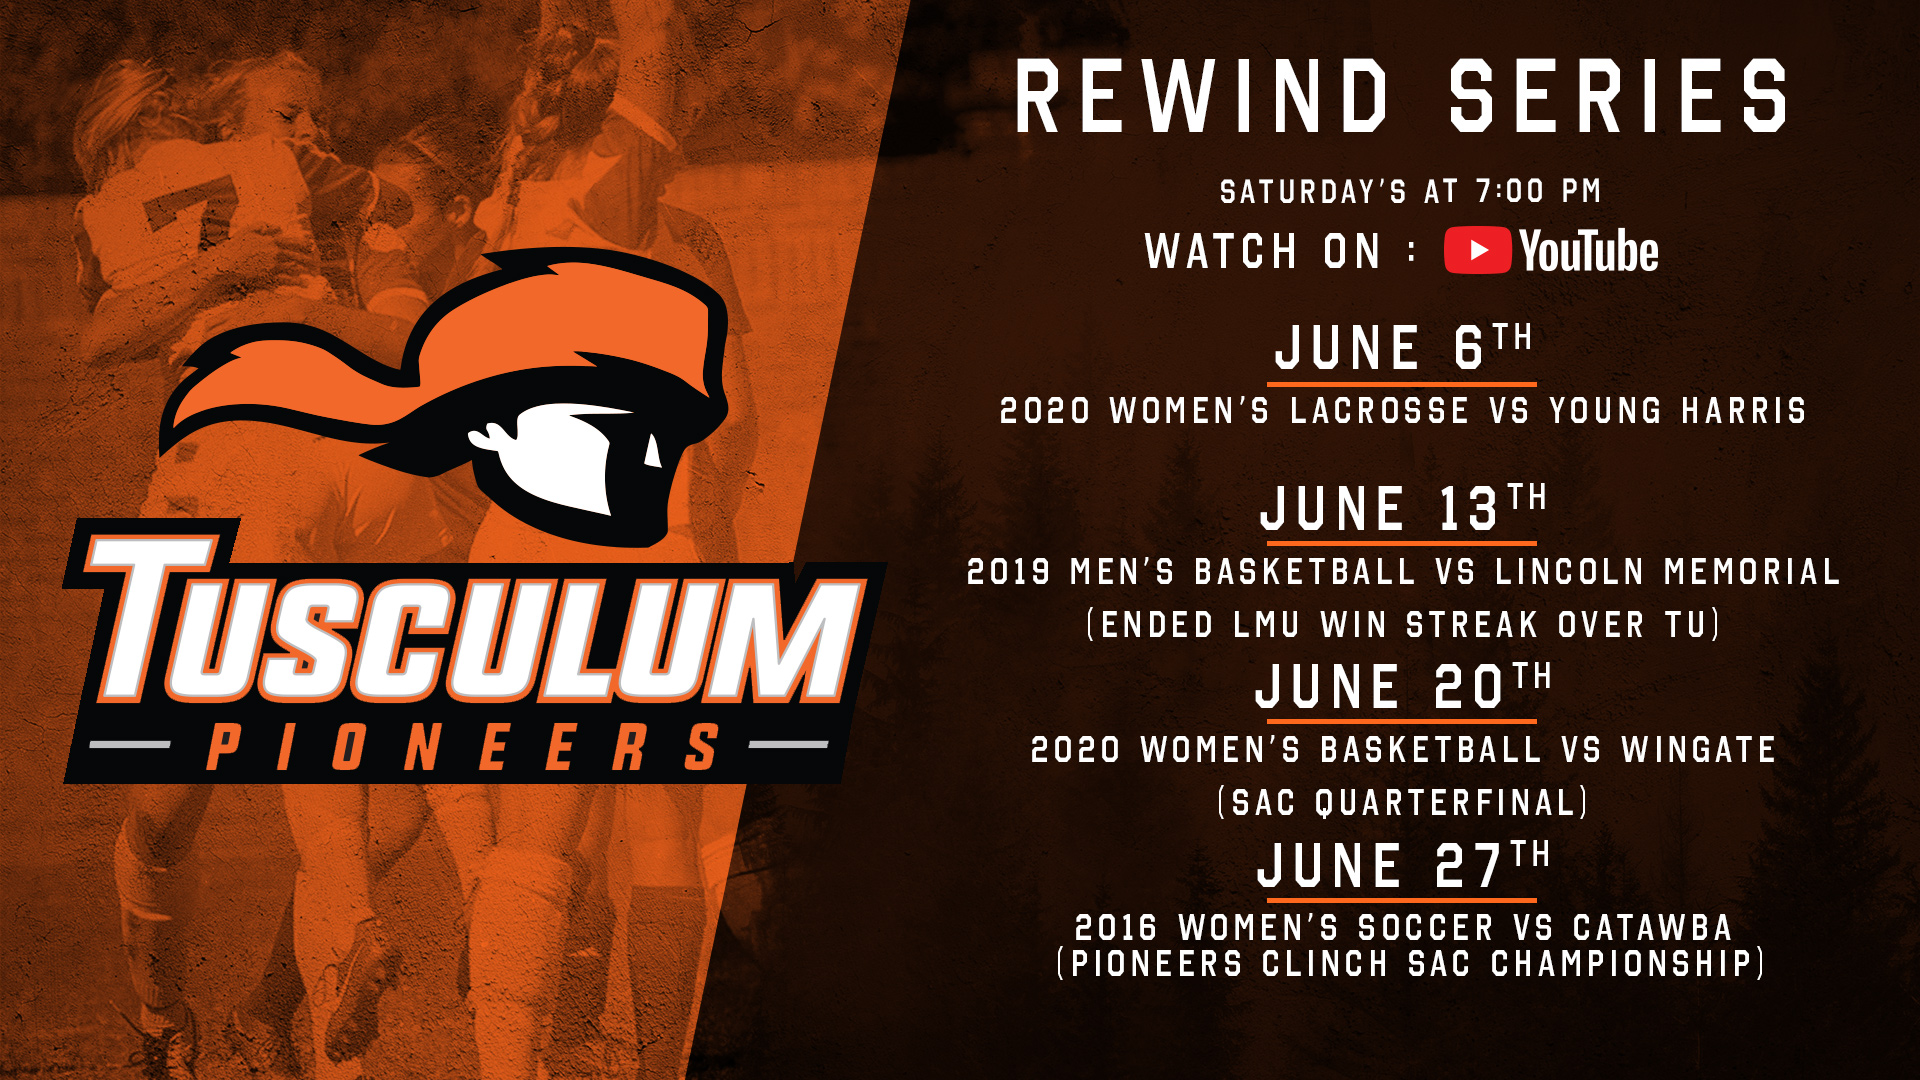 Tusculum Rewind Series continues in June